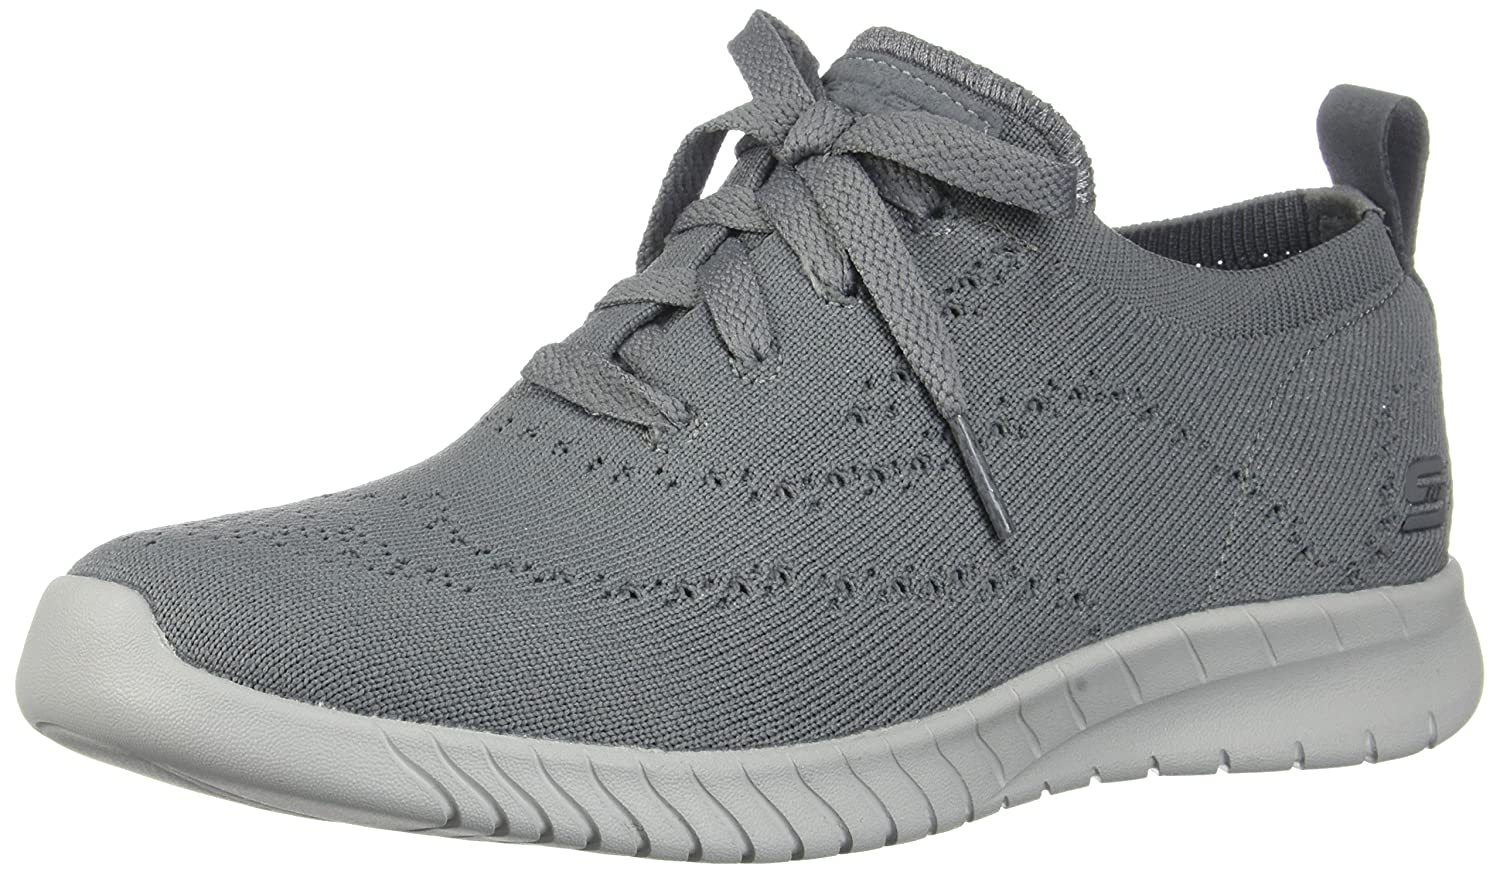 Skechers Women's Wave-Lite Sneaker B0797QPMJM 7.5 B(M) US|Grey